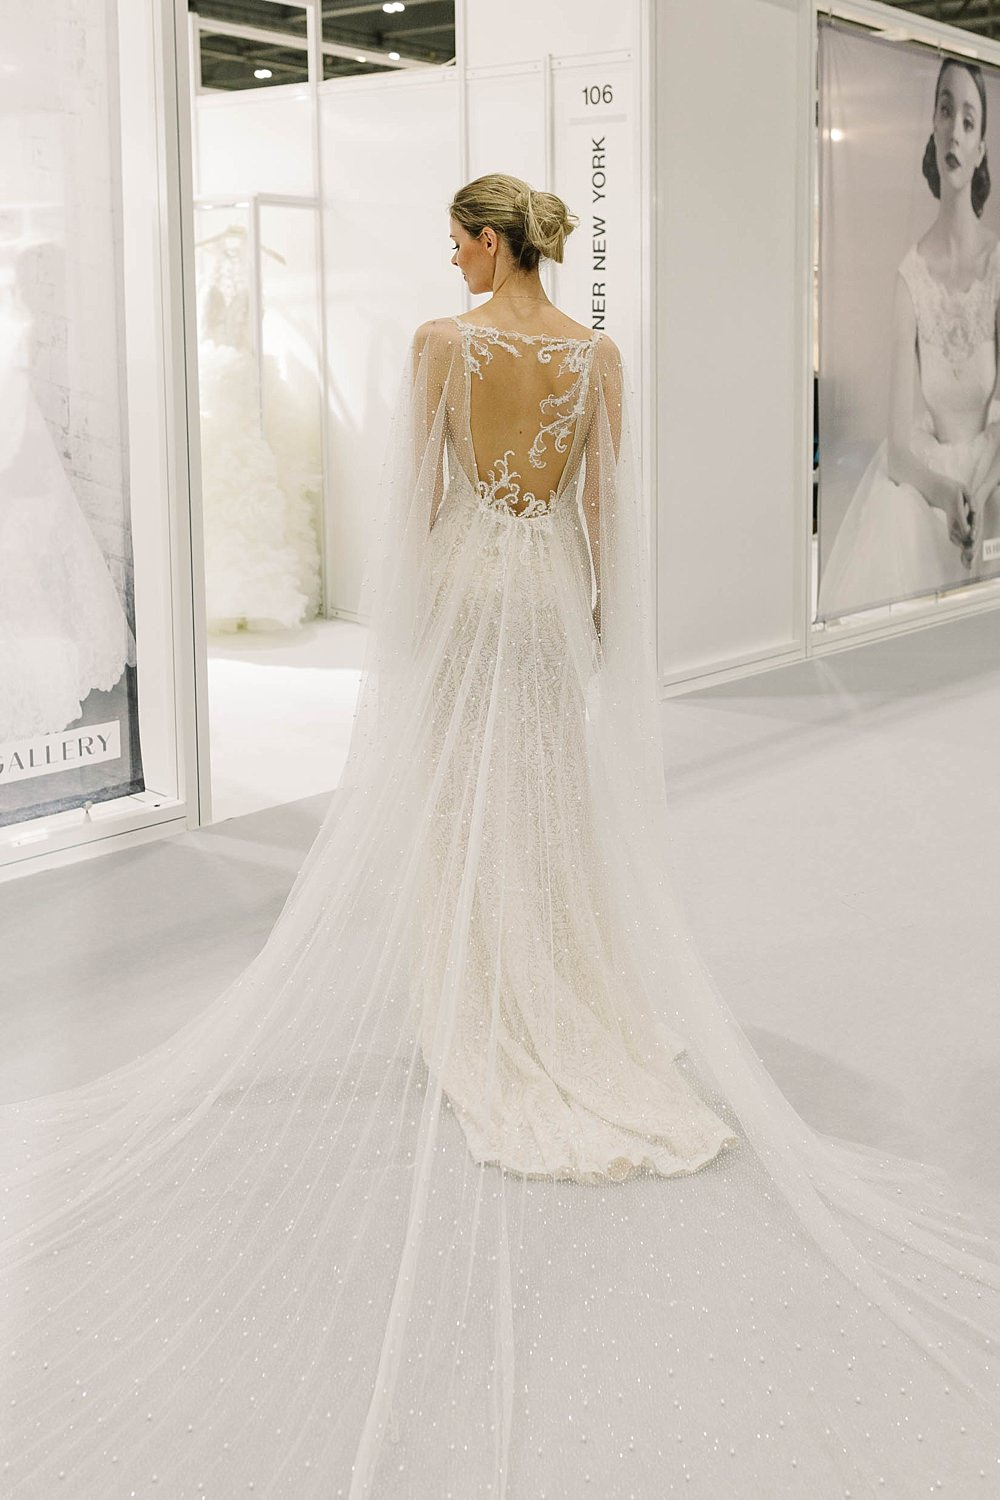 Anny Lin Bridal at White Gallery 2018